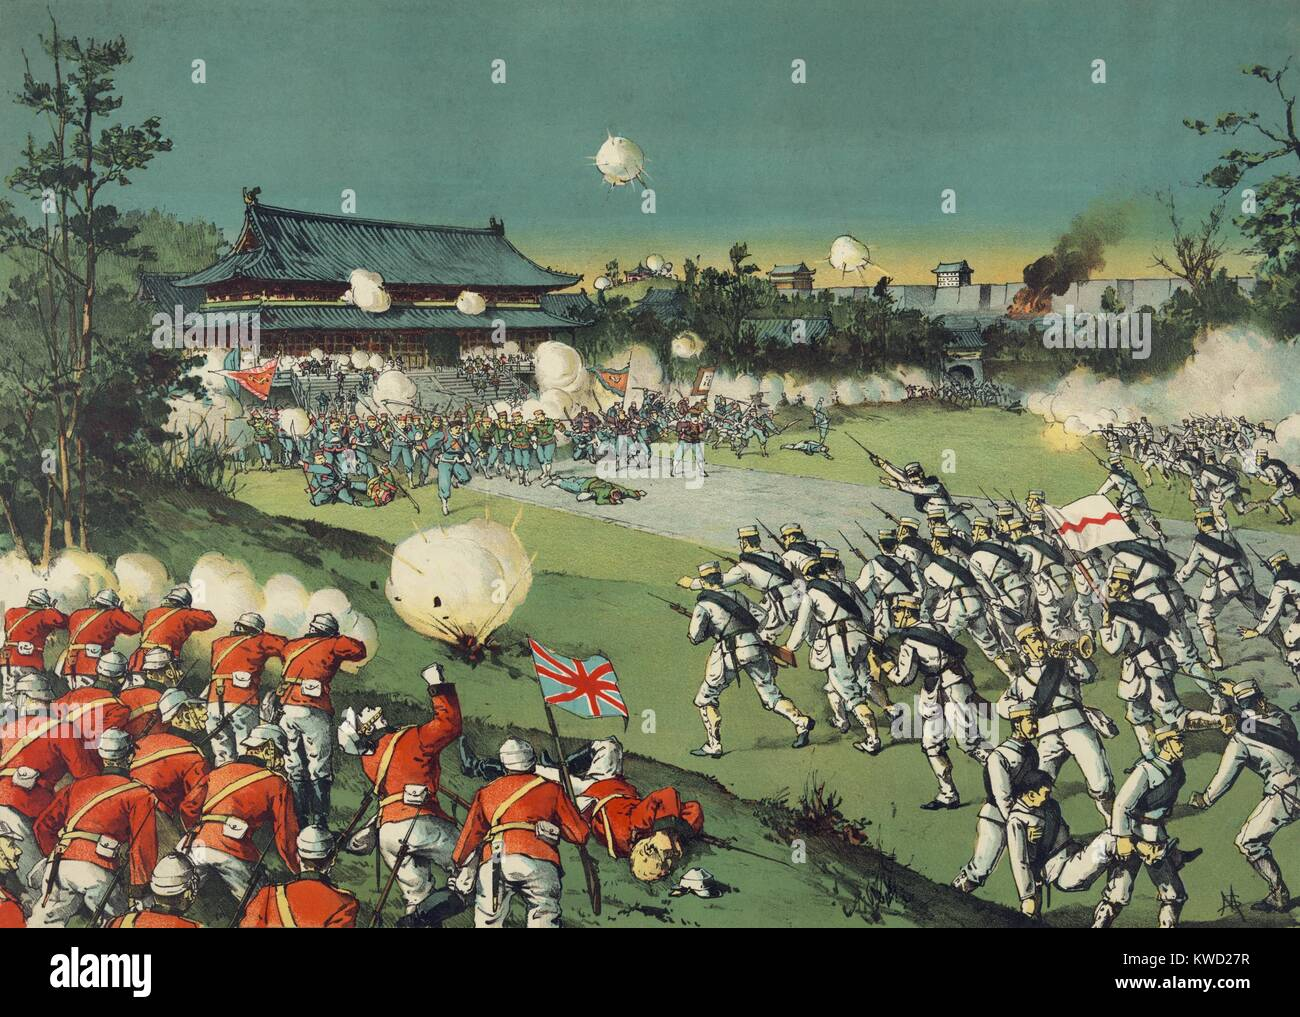 British and Japanese soldiers assaulting the Boxer forces at Imperial Castle, August 1900. They fought within the - Stock Image